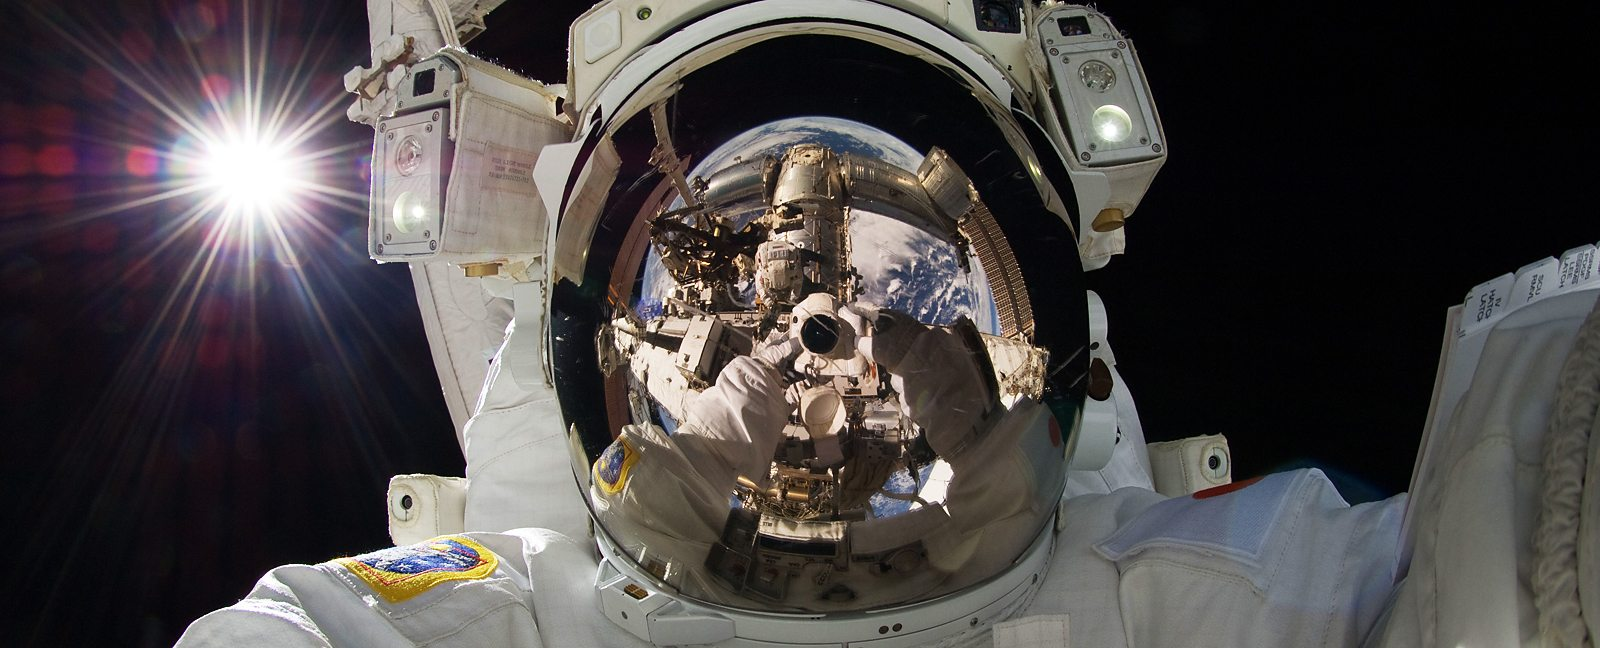 BBC iWonder - Do you have what it takes to be an astronaut?